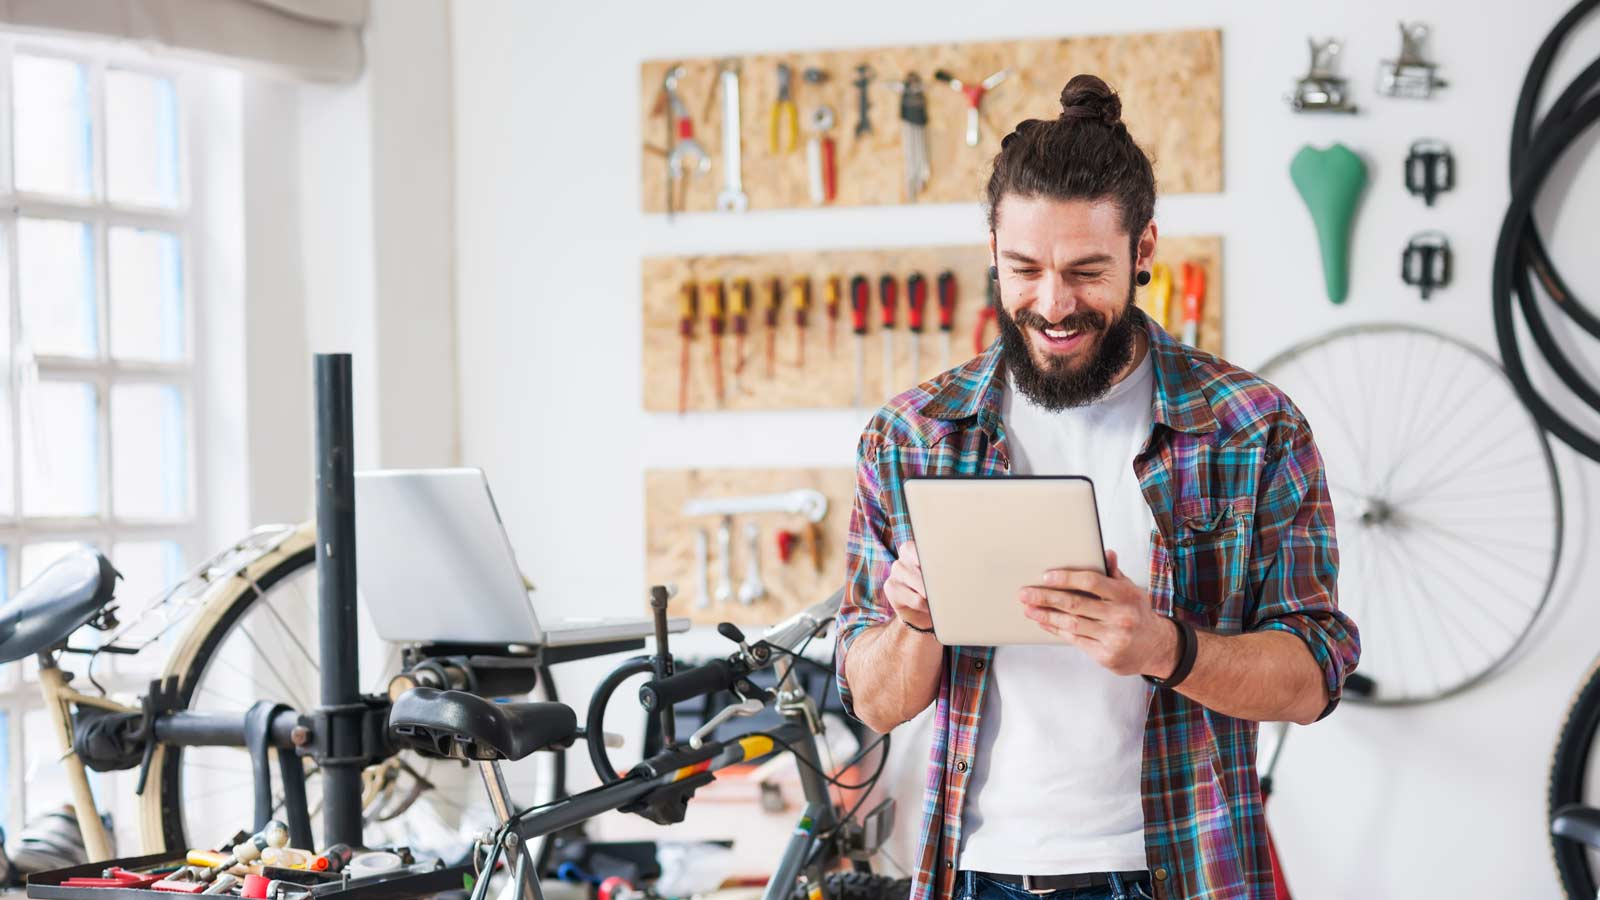 In a bike shop, a bearded young employee uses a tablet.